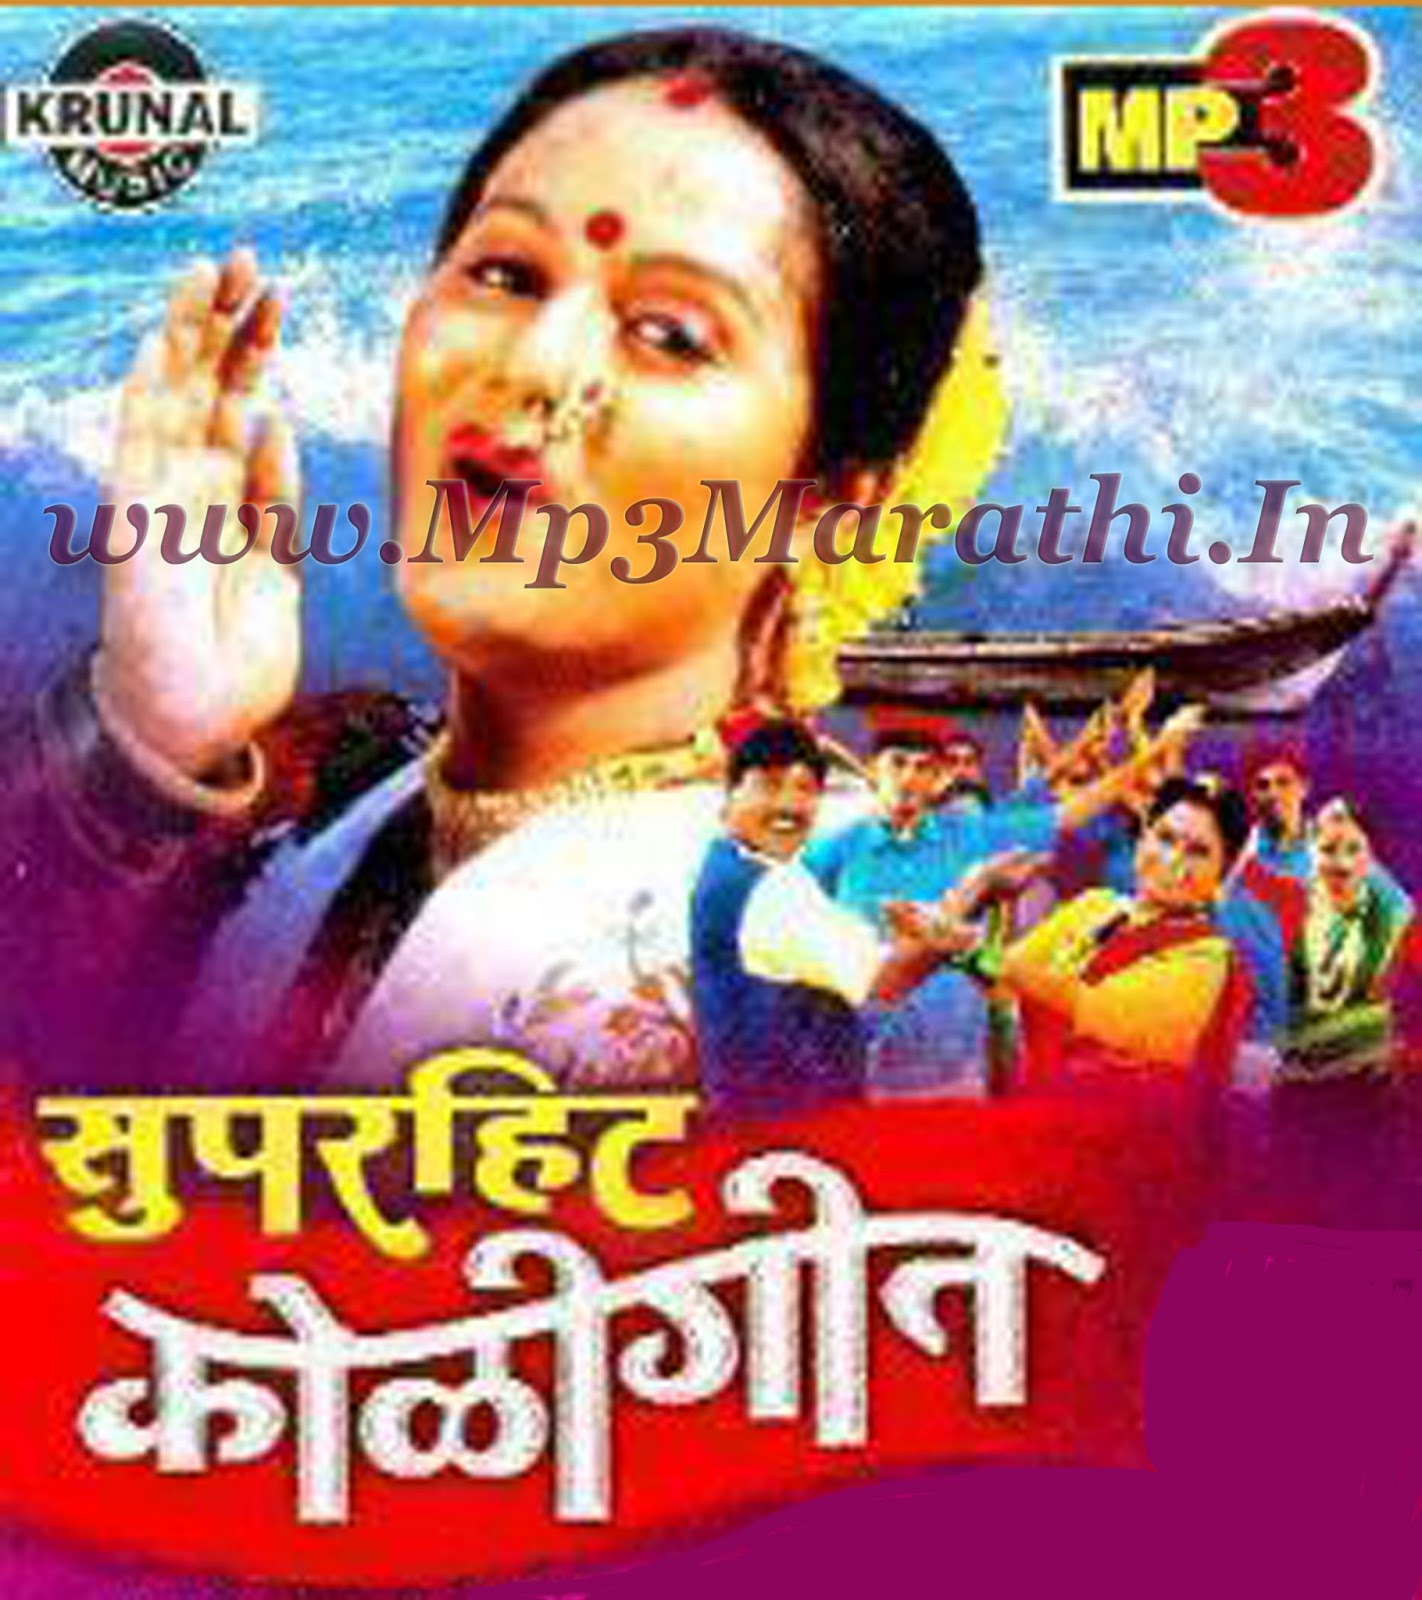 Superhit koli Geet Mp3 Songs free Download - Download Marathi mp3 ...matathi mp3 songs